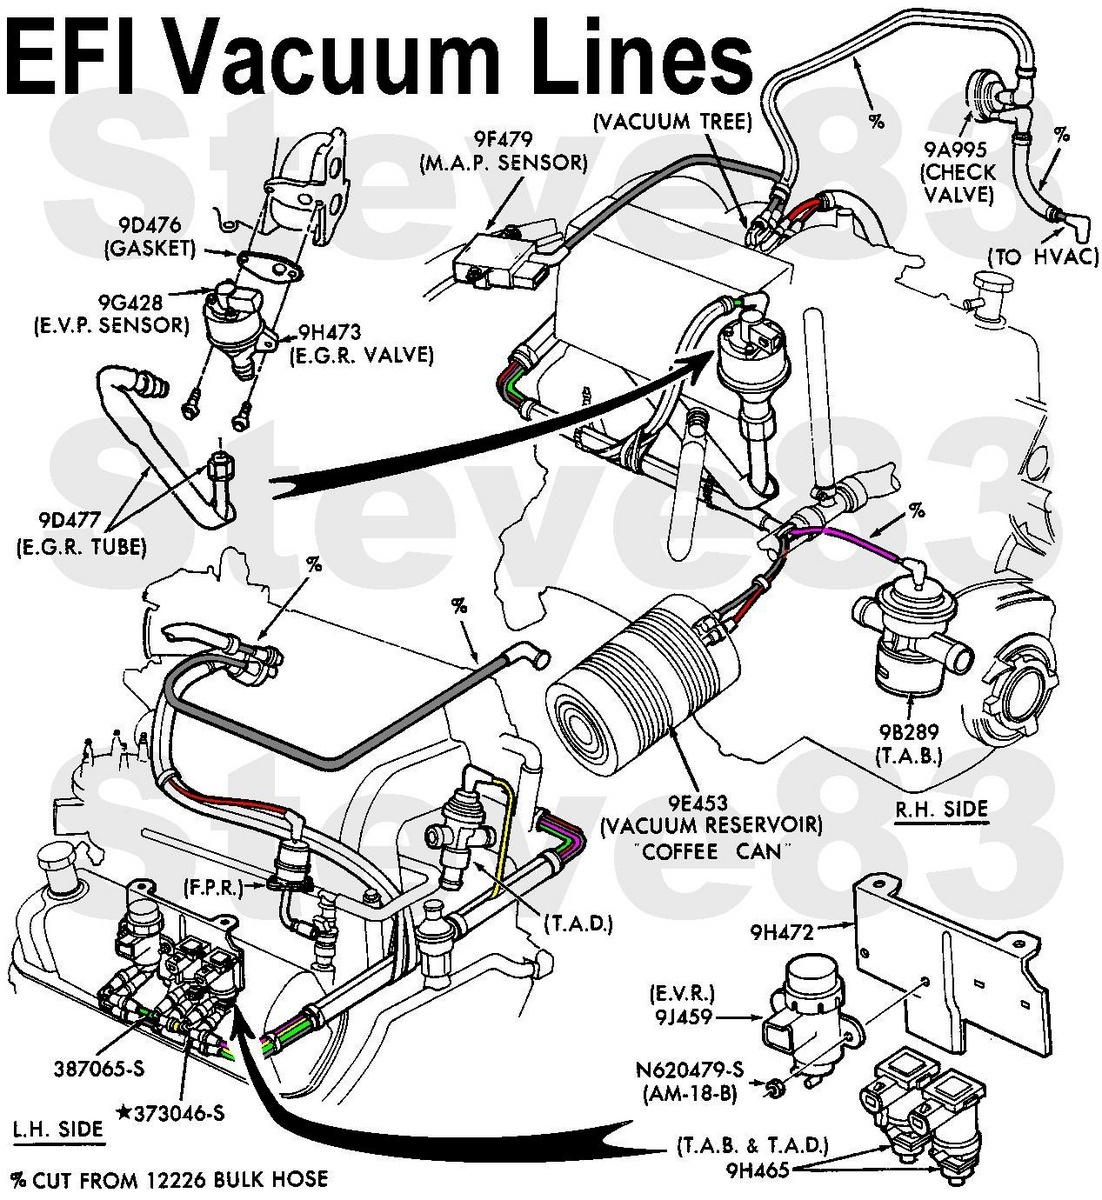 hight resolution of 1990 f150 exhaust diagram automotive wiring diagrams 1998 ford f 150 exhaust diagram 1990 f150